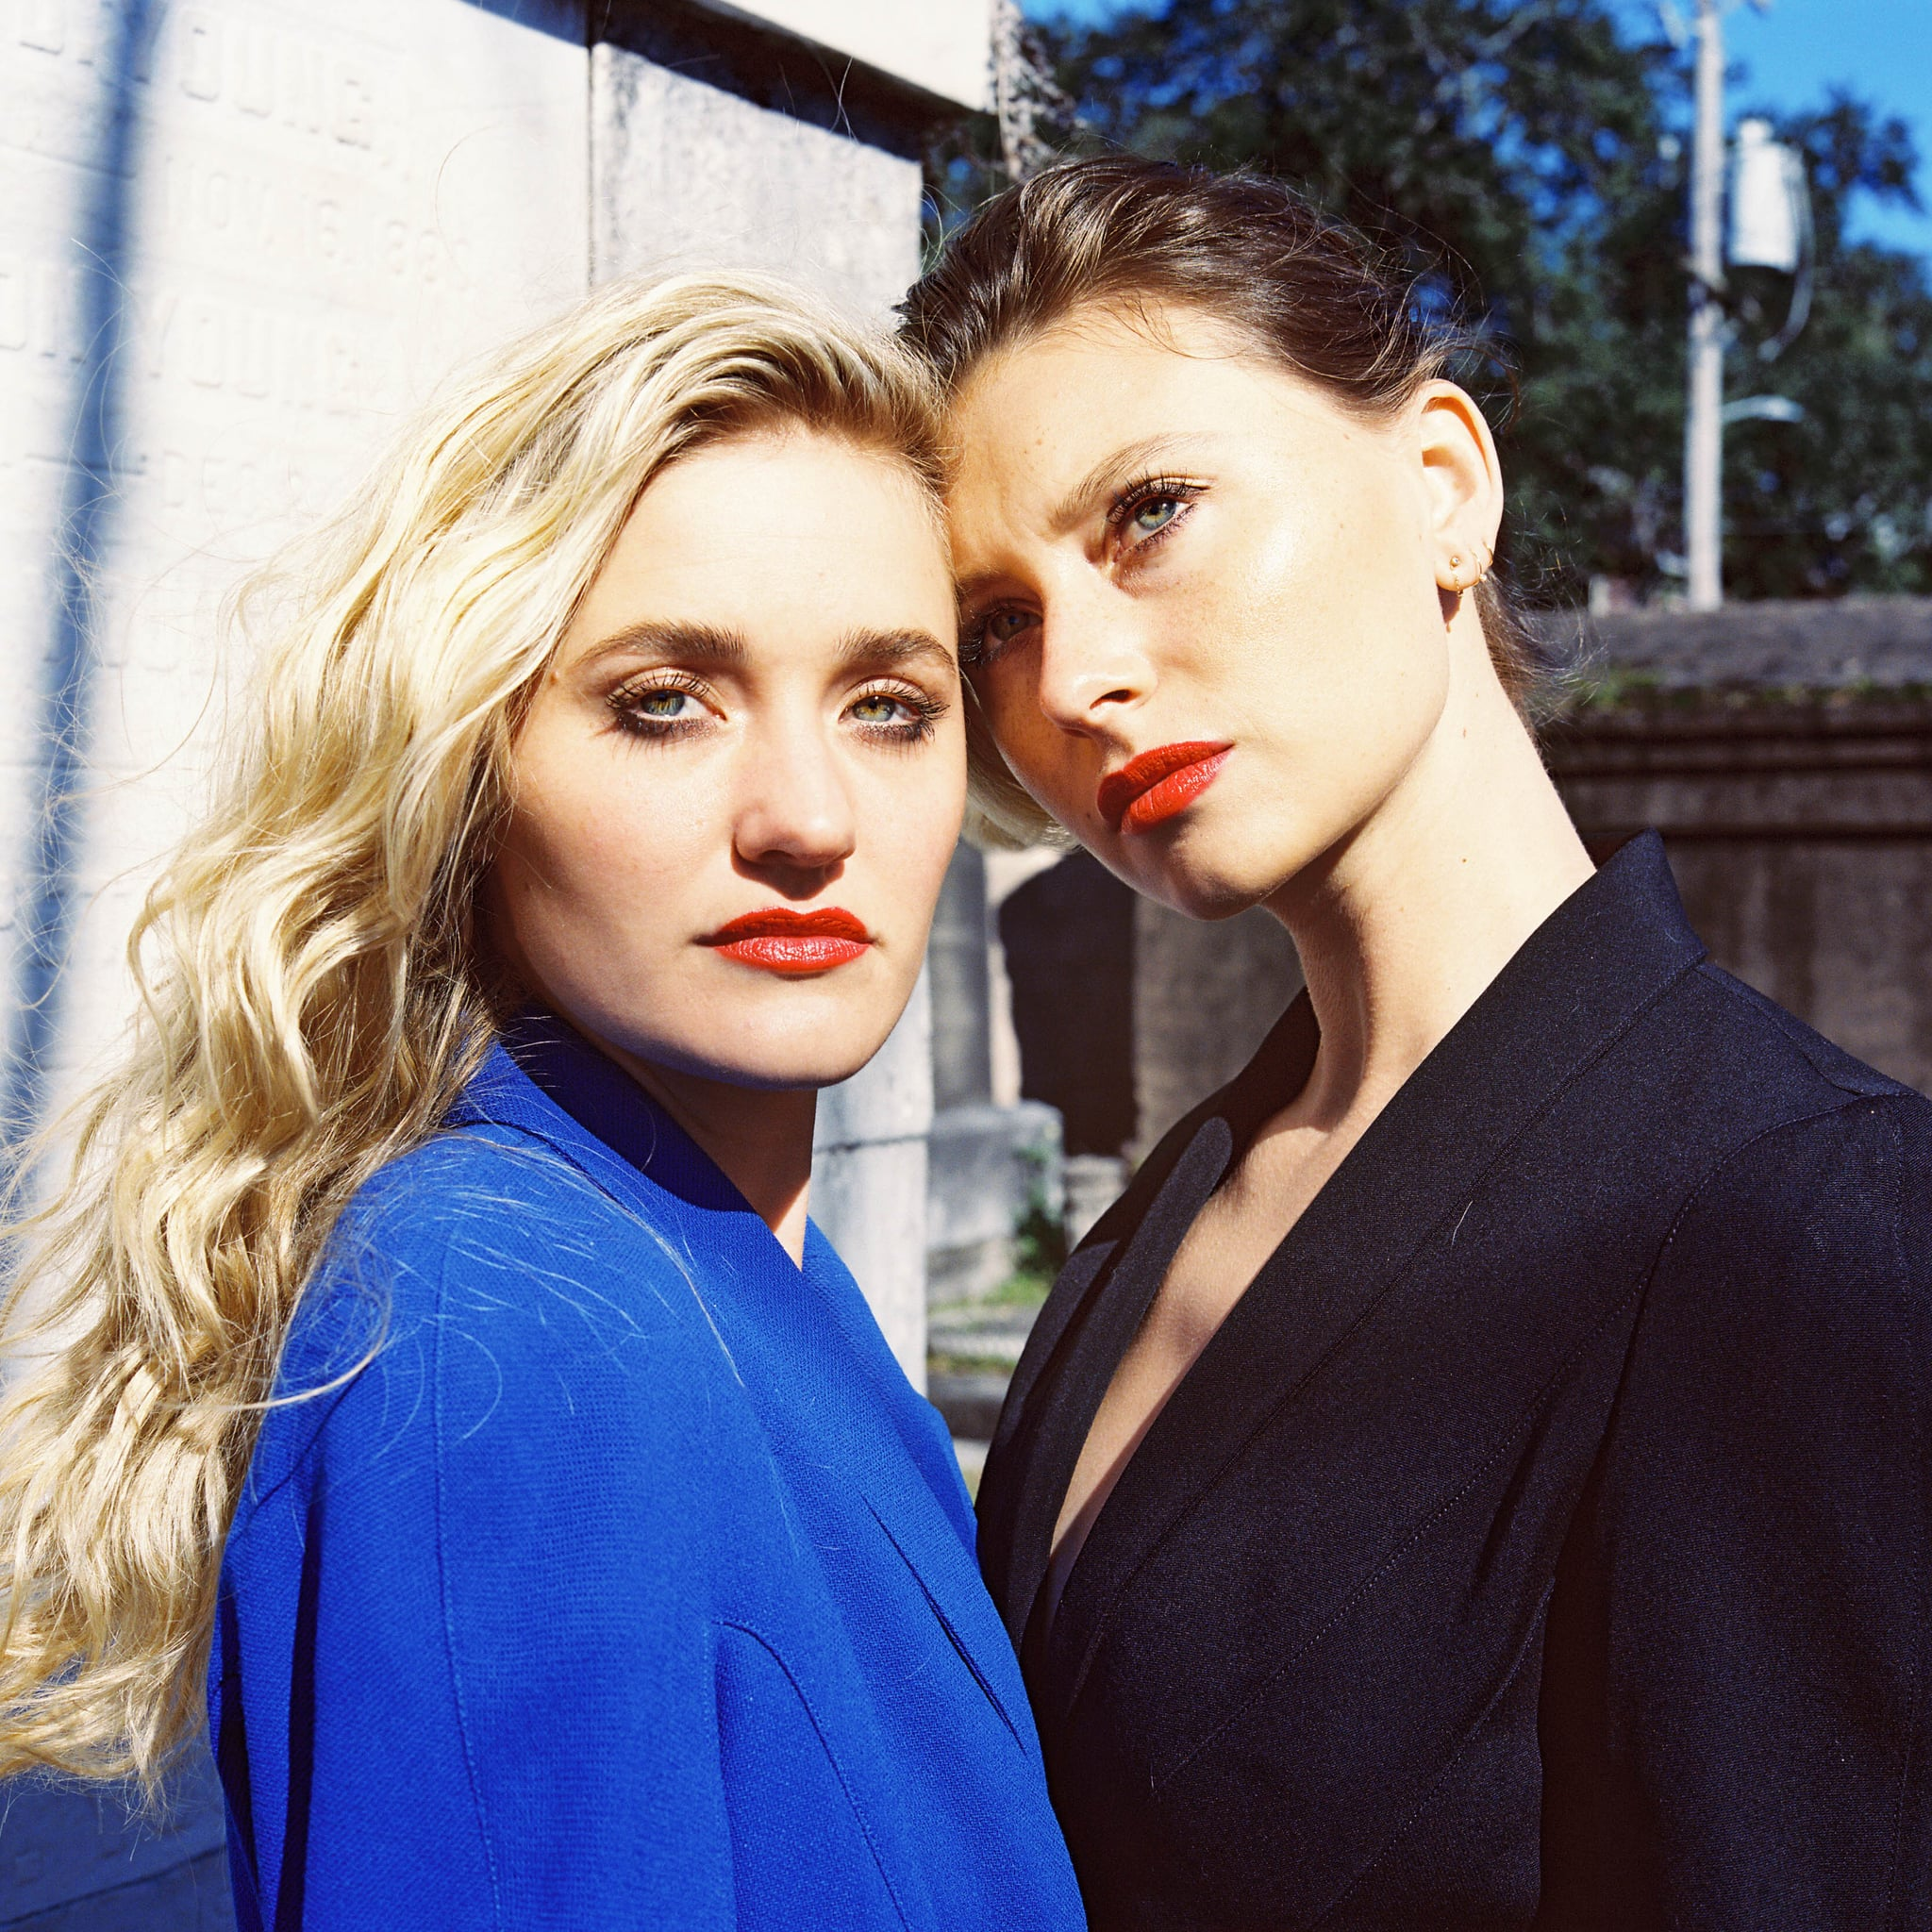 aly and aj - photo #18